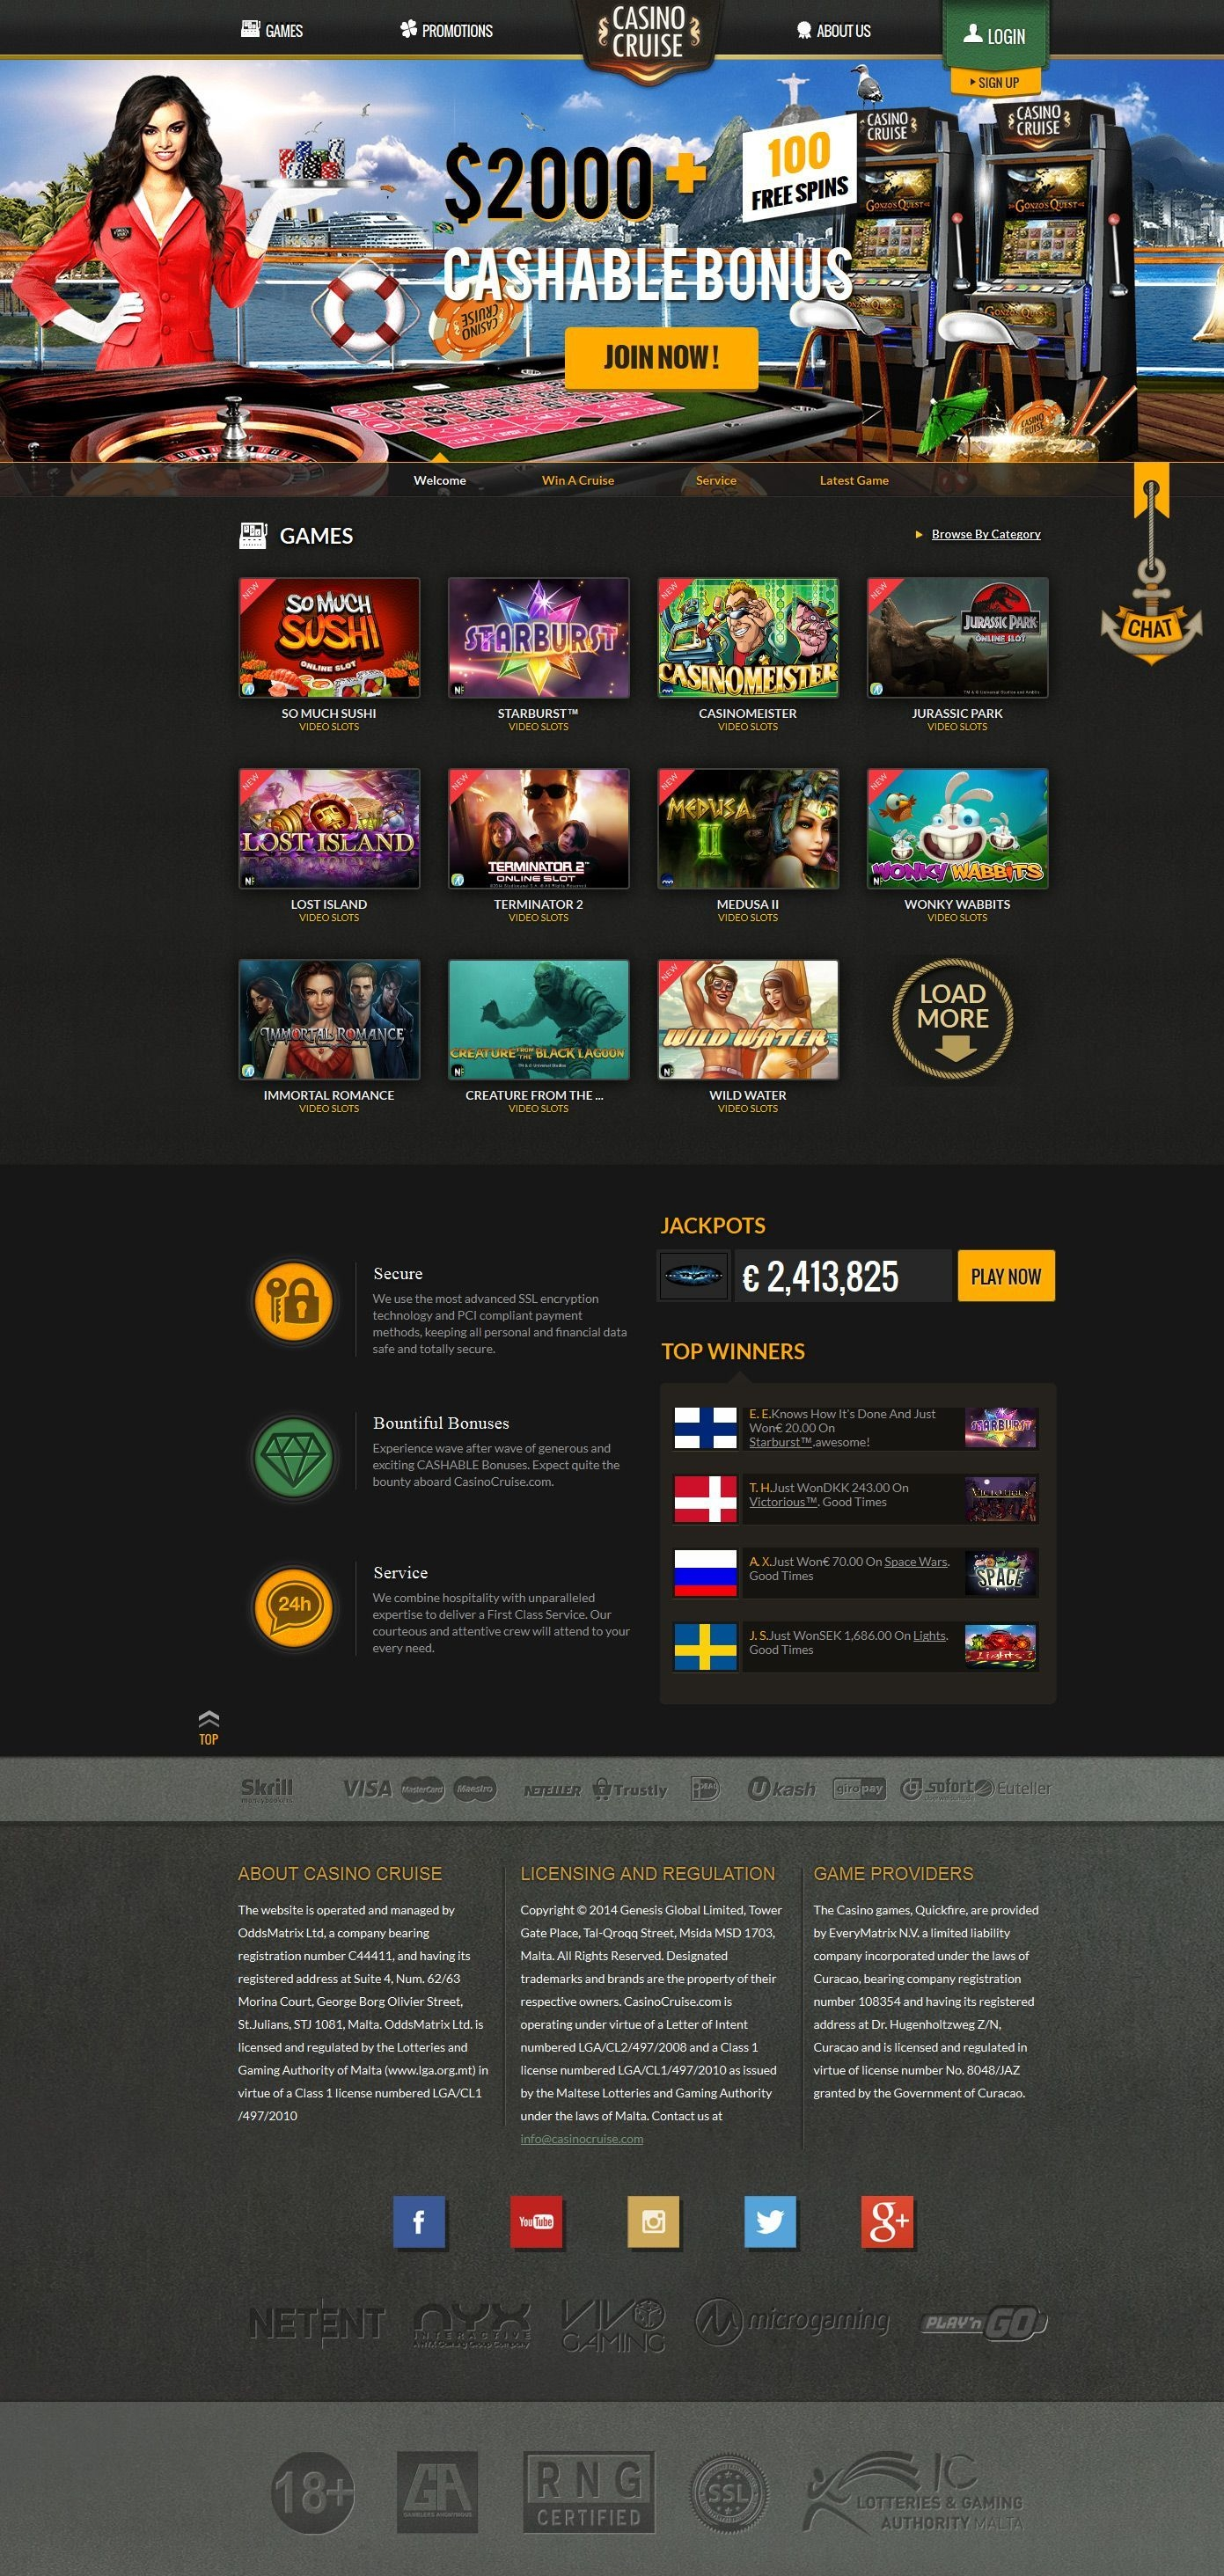 Eur 99 Casino Chip at bWin